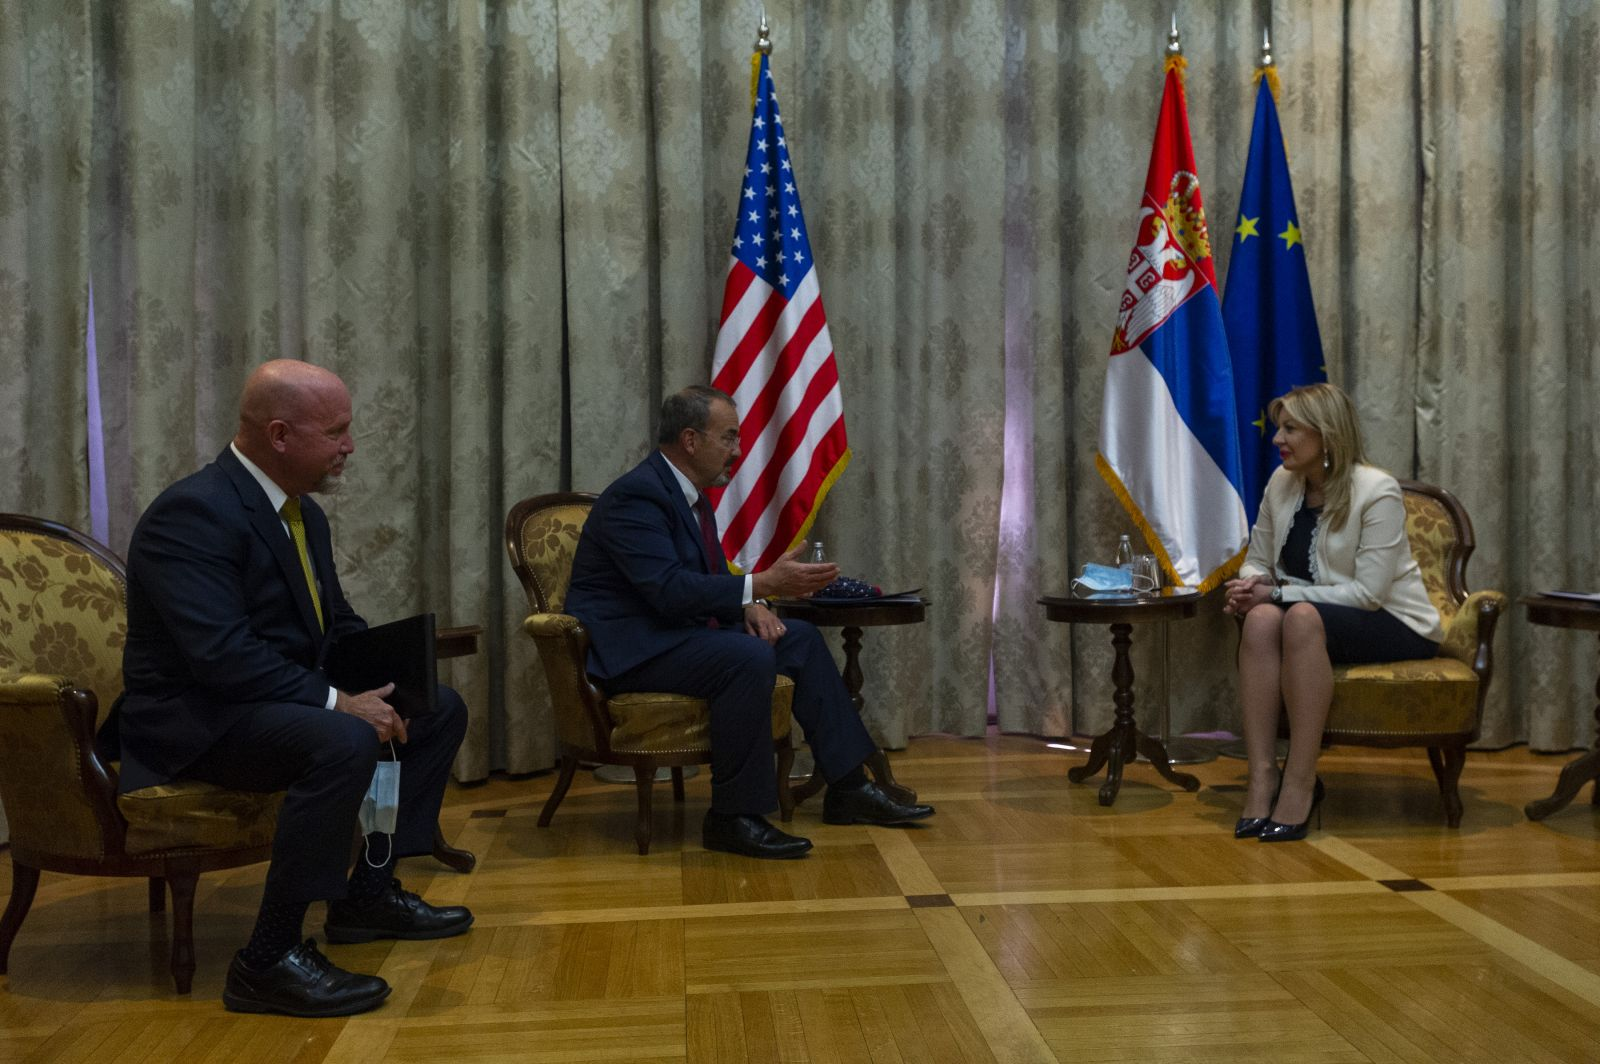 J. Joksimović: USA is showing strong support to our European path